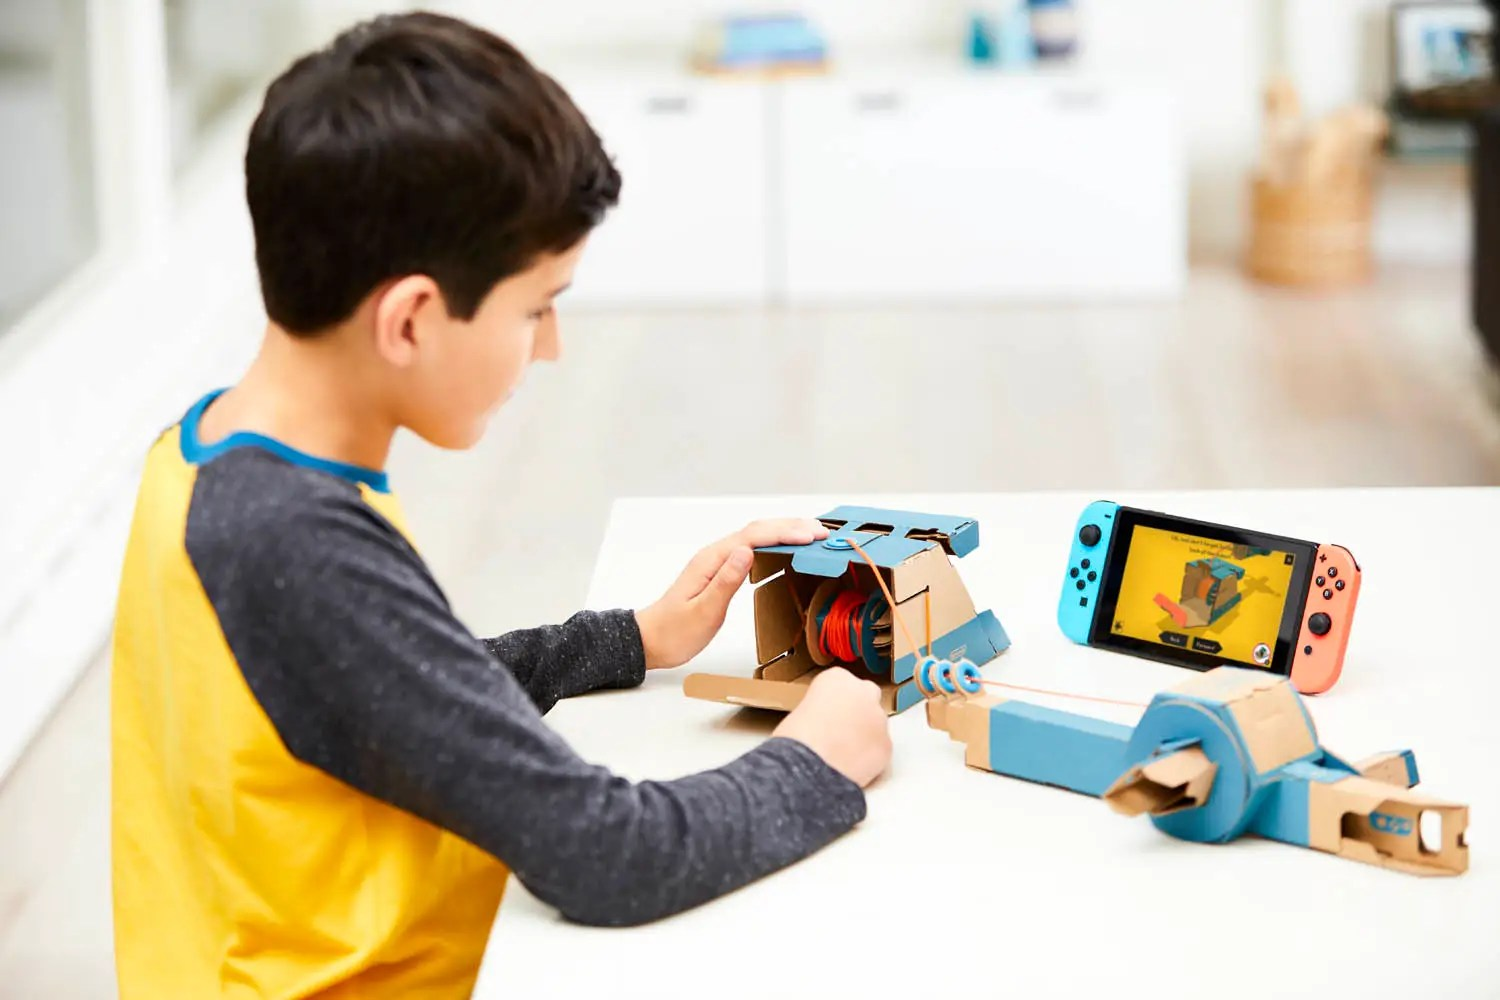 There are varying levels of difficulty to Labo, it seems. The fishing rod, for instance, seemingly has a bit more going on.